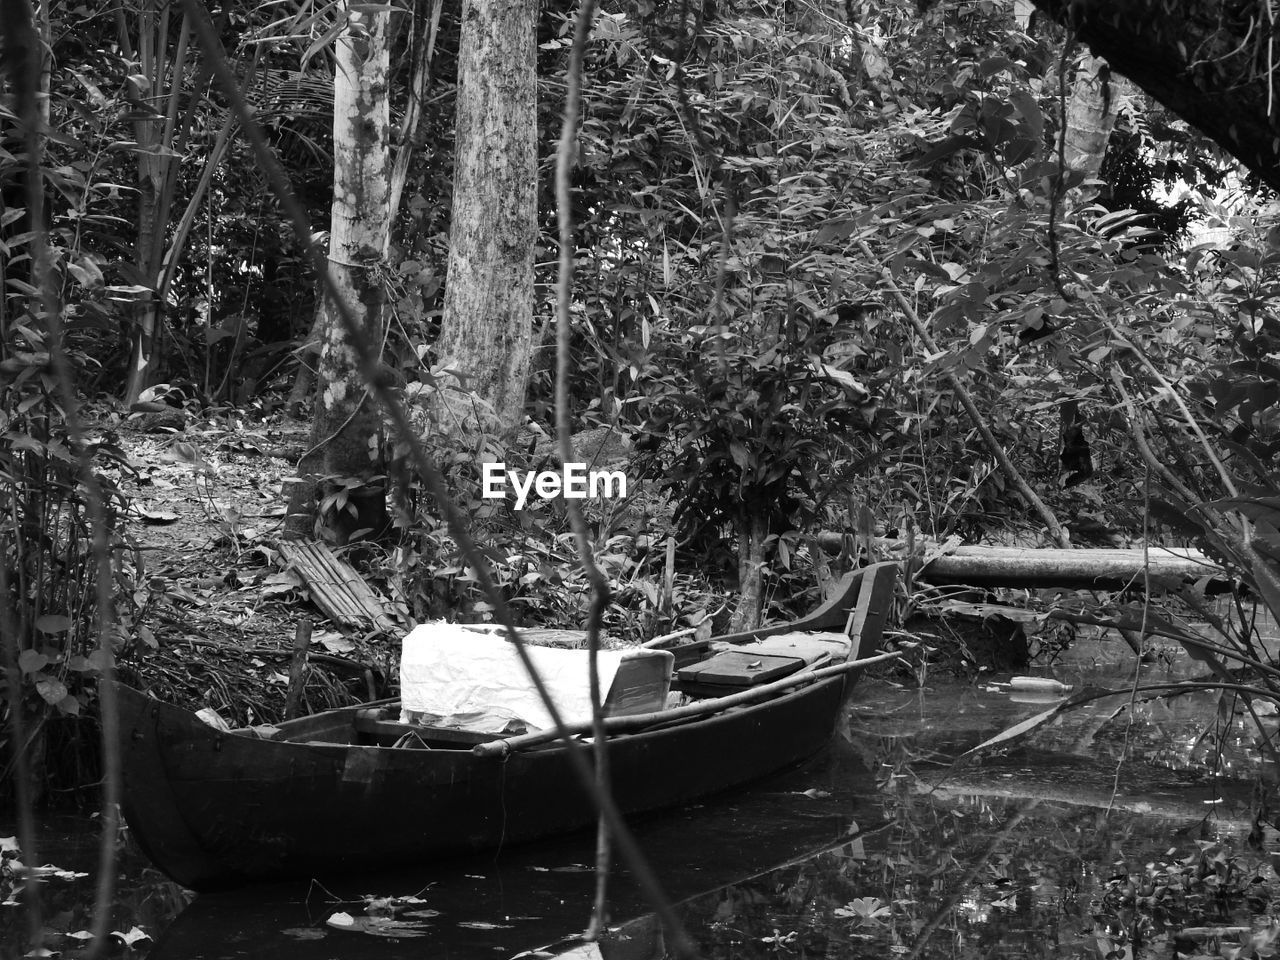 nautical vessel, outdoors, day, nature, rowboat, transportation, tree, water, forest, plant, growth, no people, beauty in nature, gondola - traditional boat